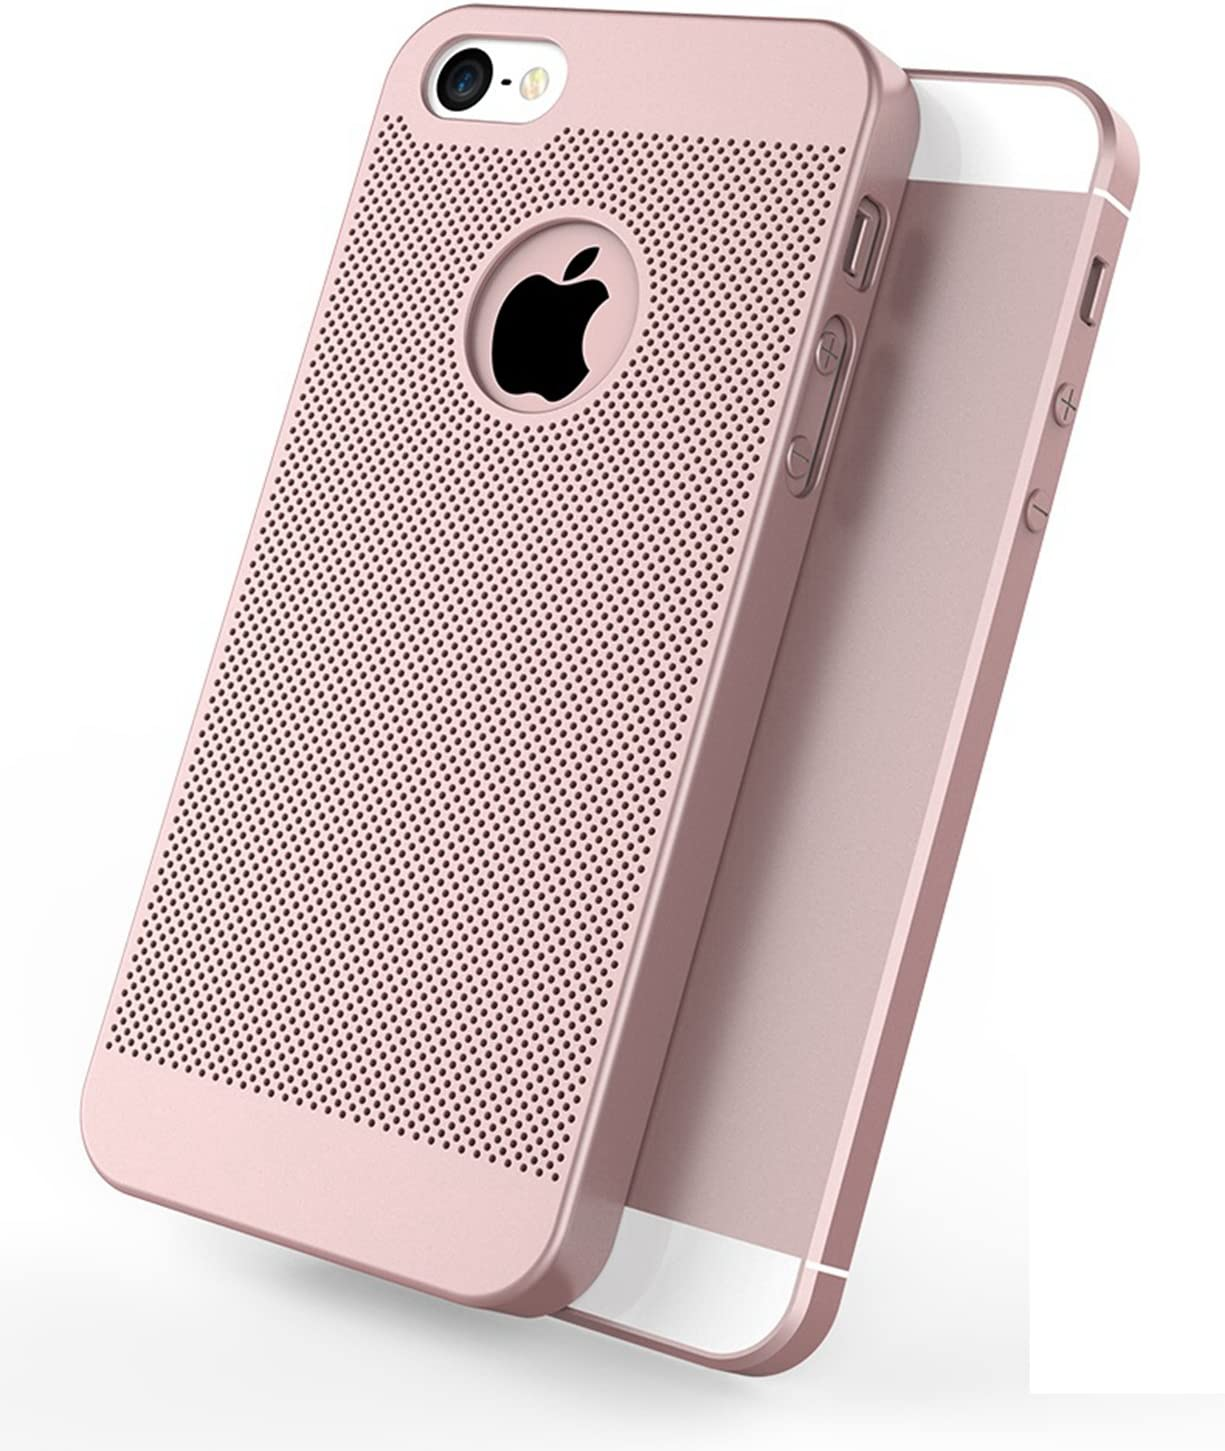 iPhone 5 Case/iPhone 5S Case,3000 grids,Breathable & Cooling,Slightly Matte Material for a Comfortable Feel and Prevents Slipping,360° Protective Case Cover for iPhone 5/iPhone 5S